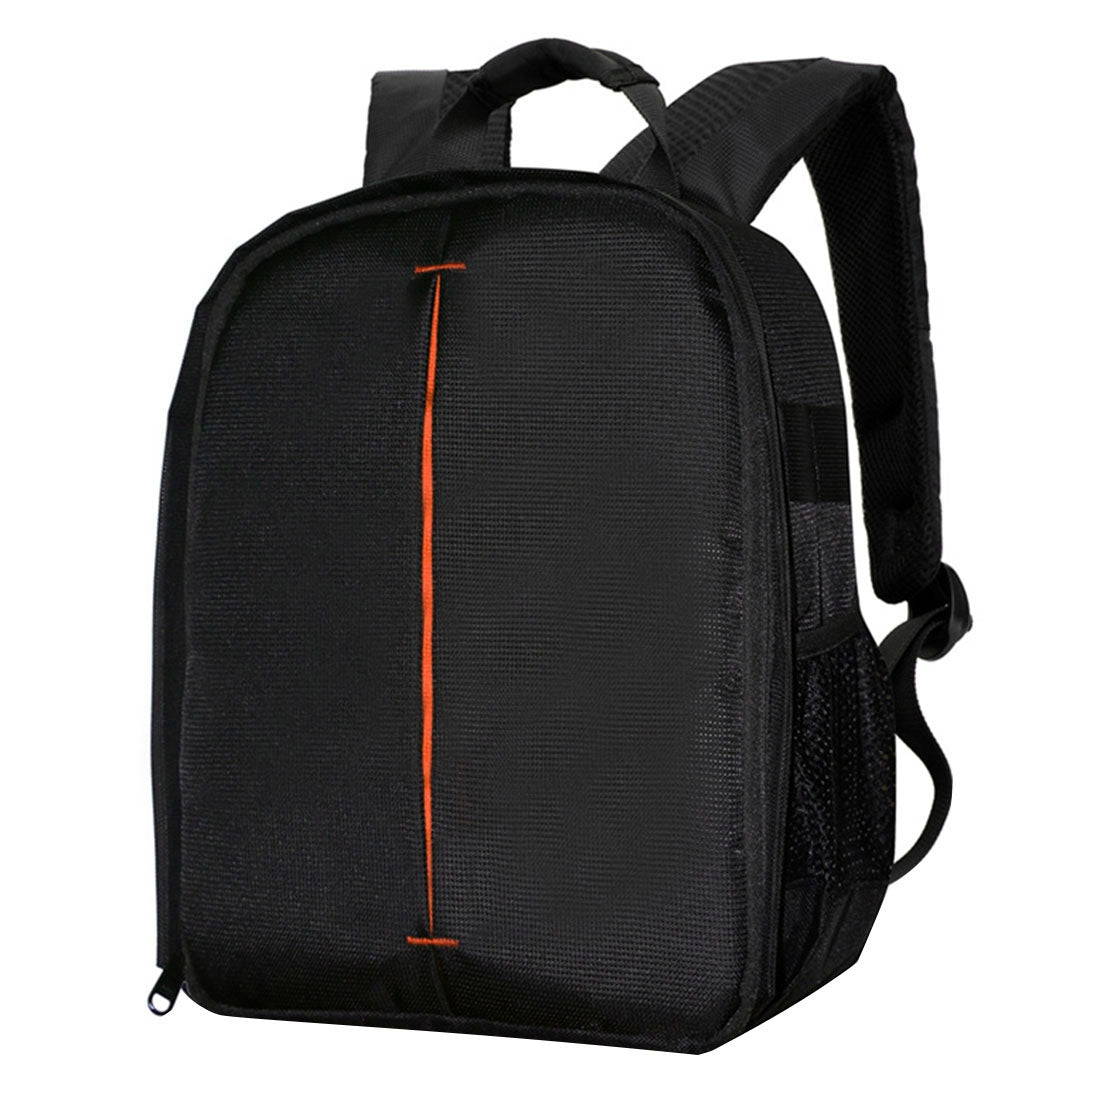 DL-B028 Portable Casual Style Waterproof Scratch-proof Outdoor Sports Backpack SLR Camera Bag Phone Bag for GoPro, SJCAM, Nikon, C